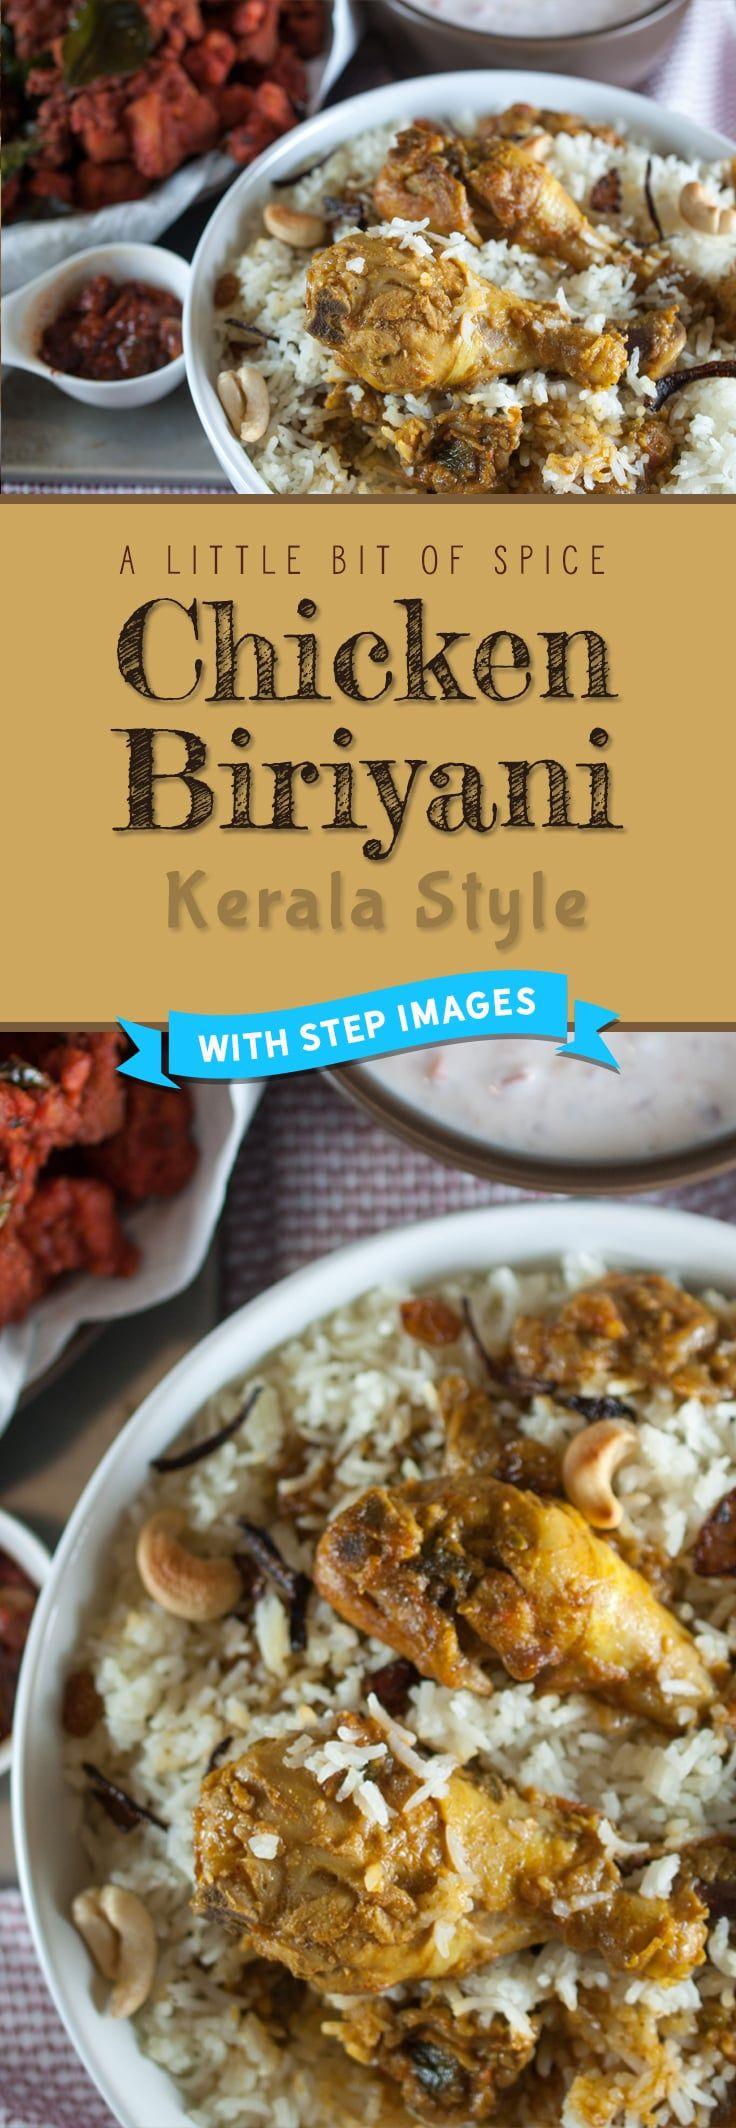 Chicken marinated and cooked in spices and layered with rice.An Indian one pot meal.An easy, quick, tasty and delicious Kerala chicken biriyani recipe.